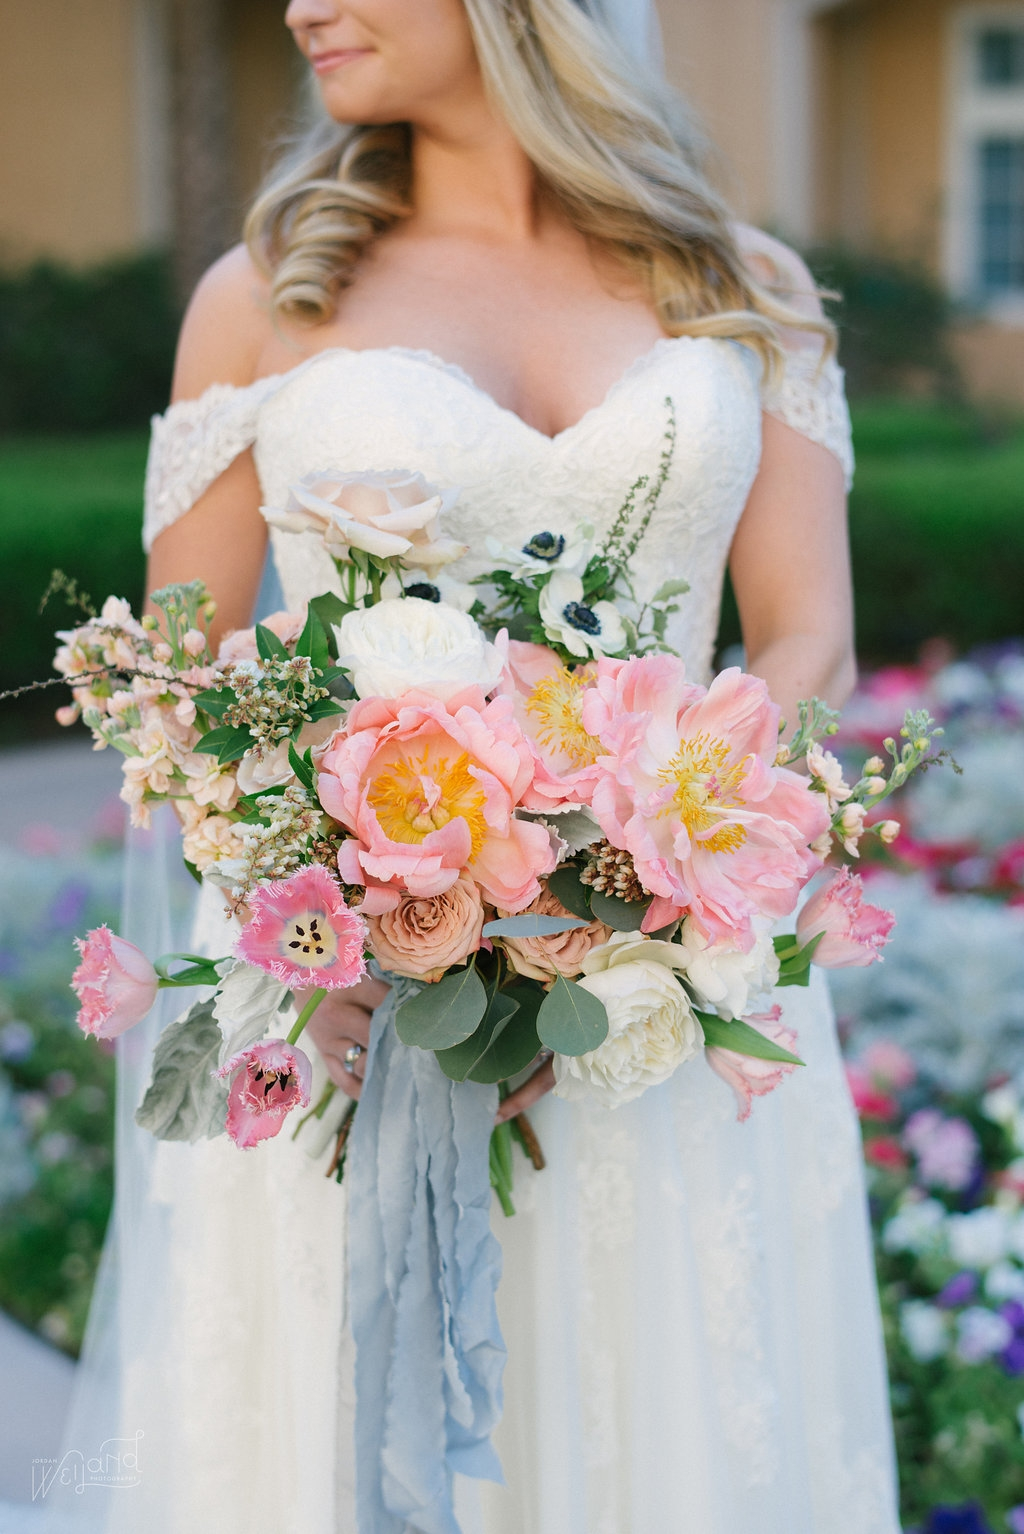 Peony Bridal Bouquet with French Ribbon || Lisa Stoner Events || Velvet & Twine || Jordan Weiland Photography